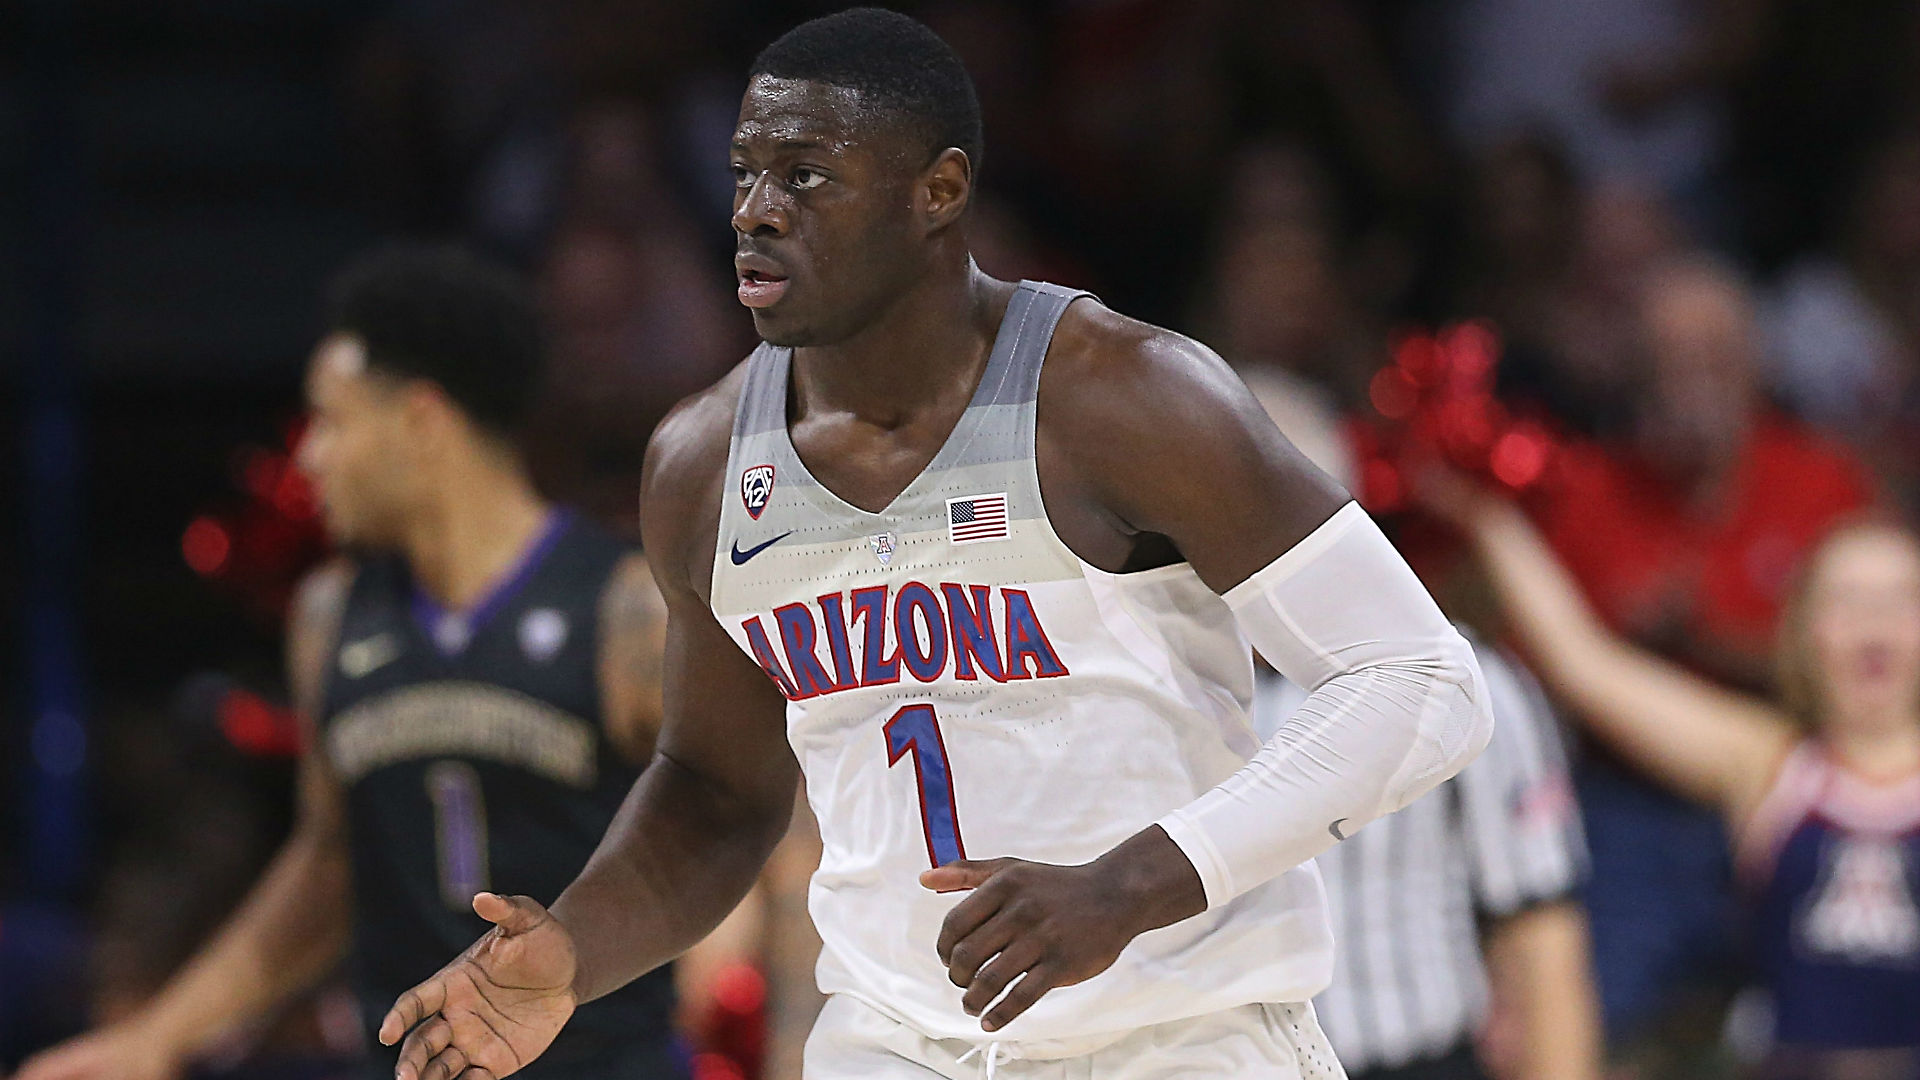 College basketball: Arizona guard Rawle Alkins will not enter NBA draft